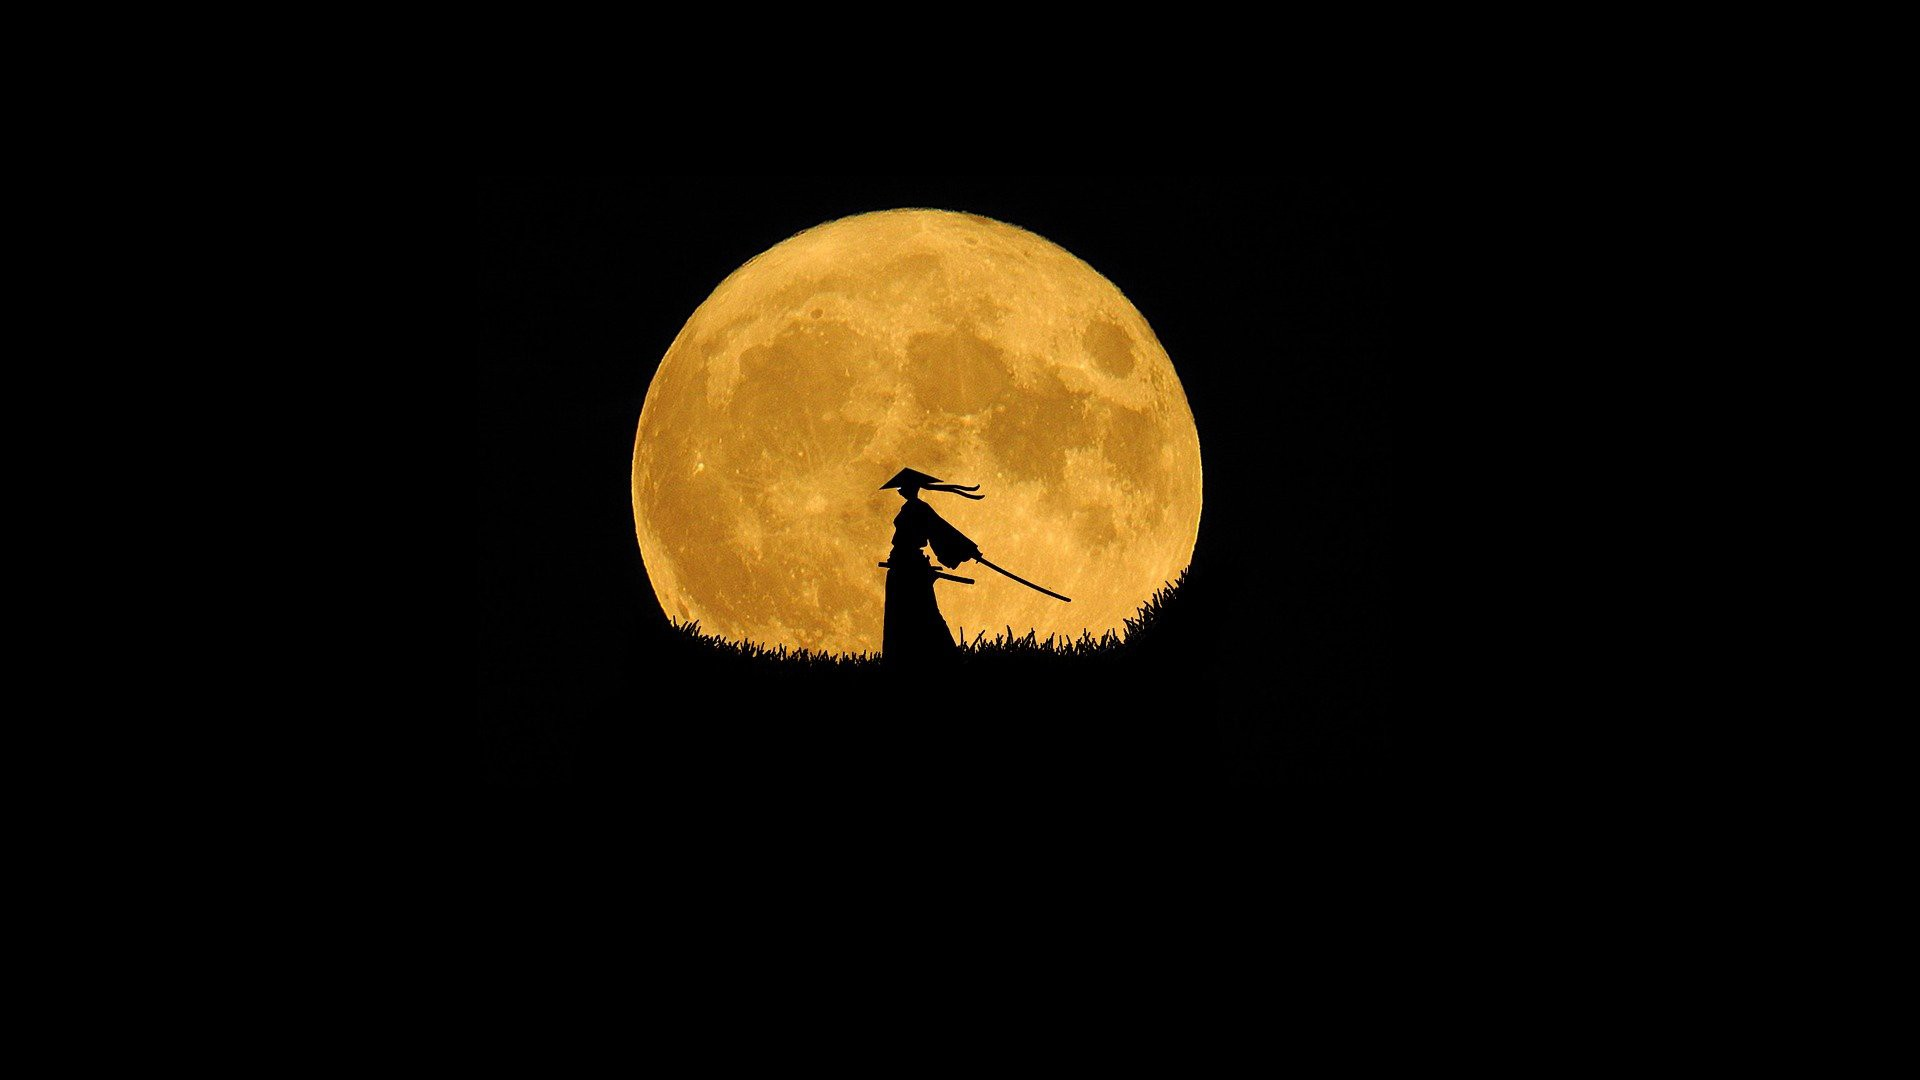 Samurai taking action with a moon behind him